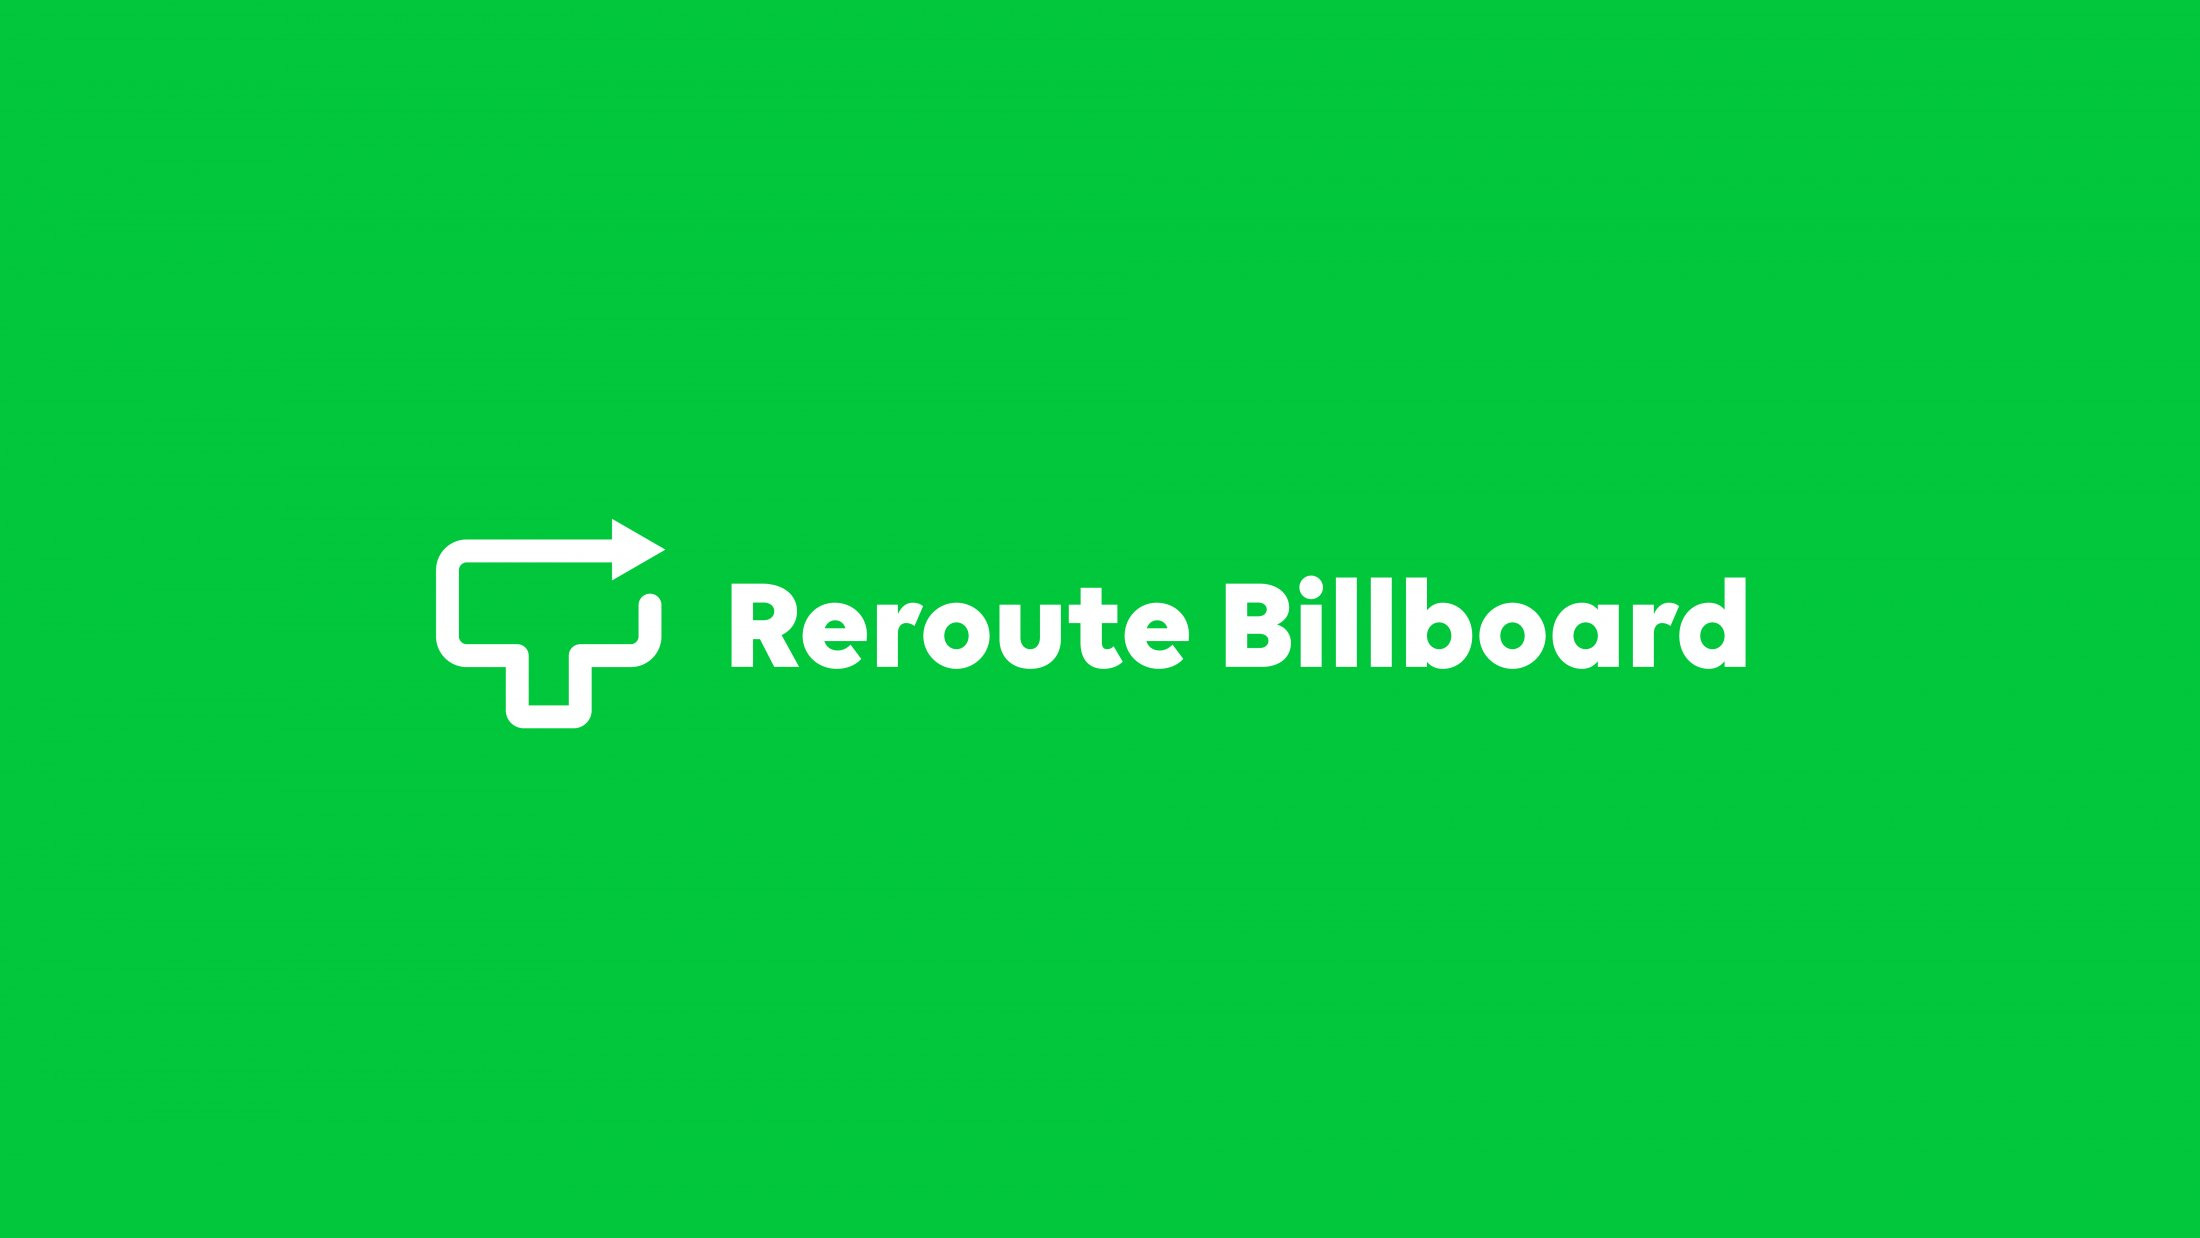 Thumbnail for Re-route Billboard